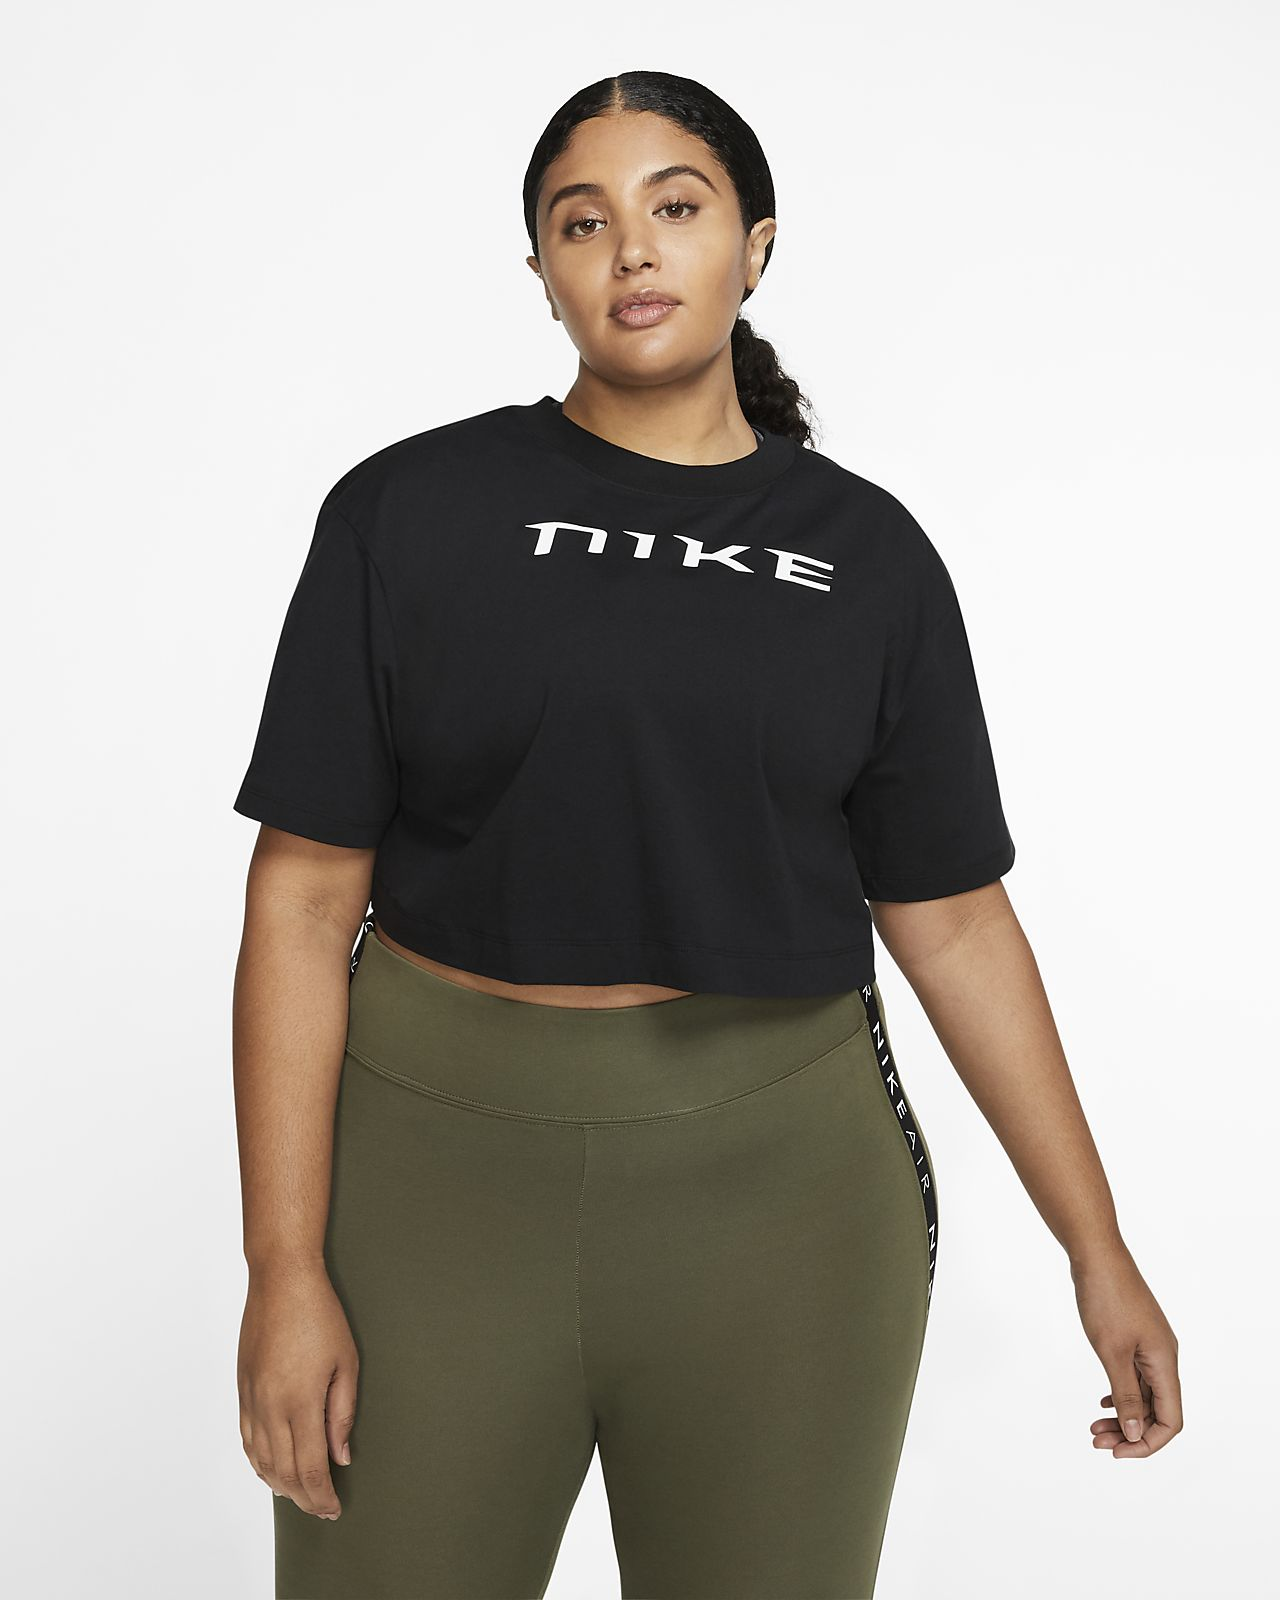 Nike Sportswear Women's Short-Sleeve Crop Top (Plus Size)